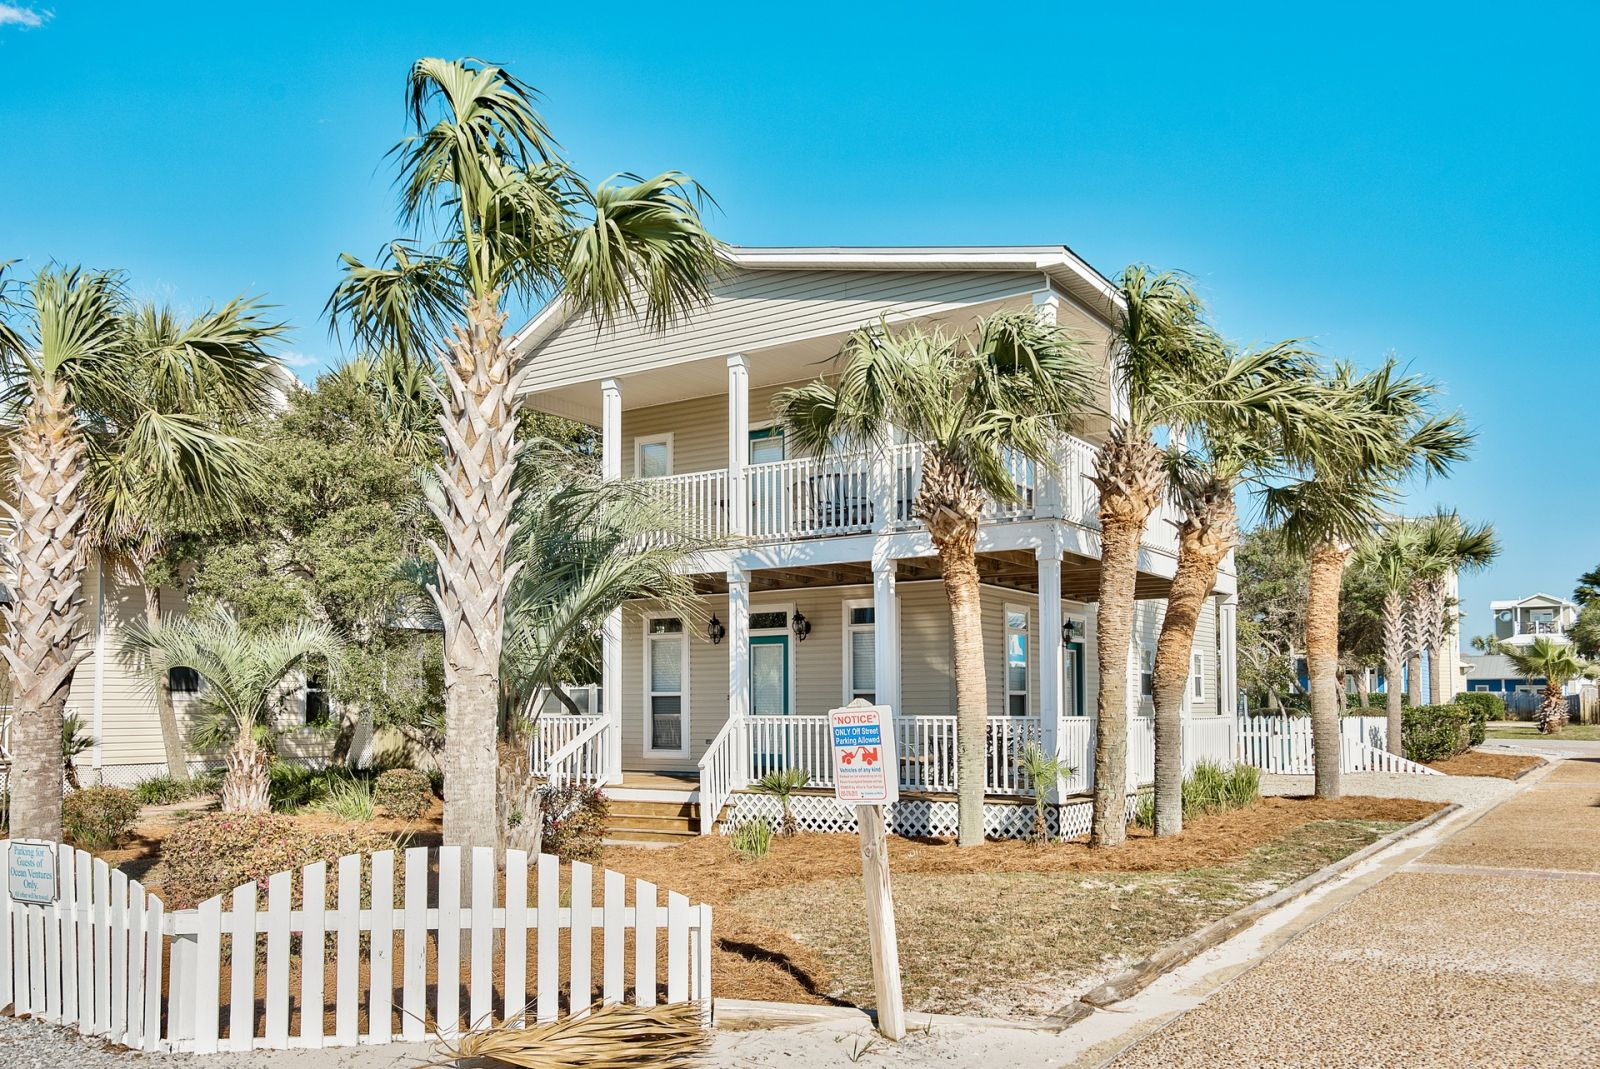 Gulf Coast Vacation Rentals at Emerald Coast By Owner